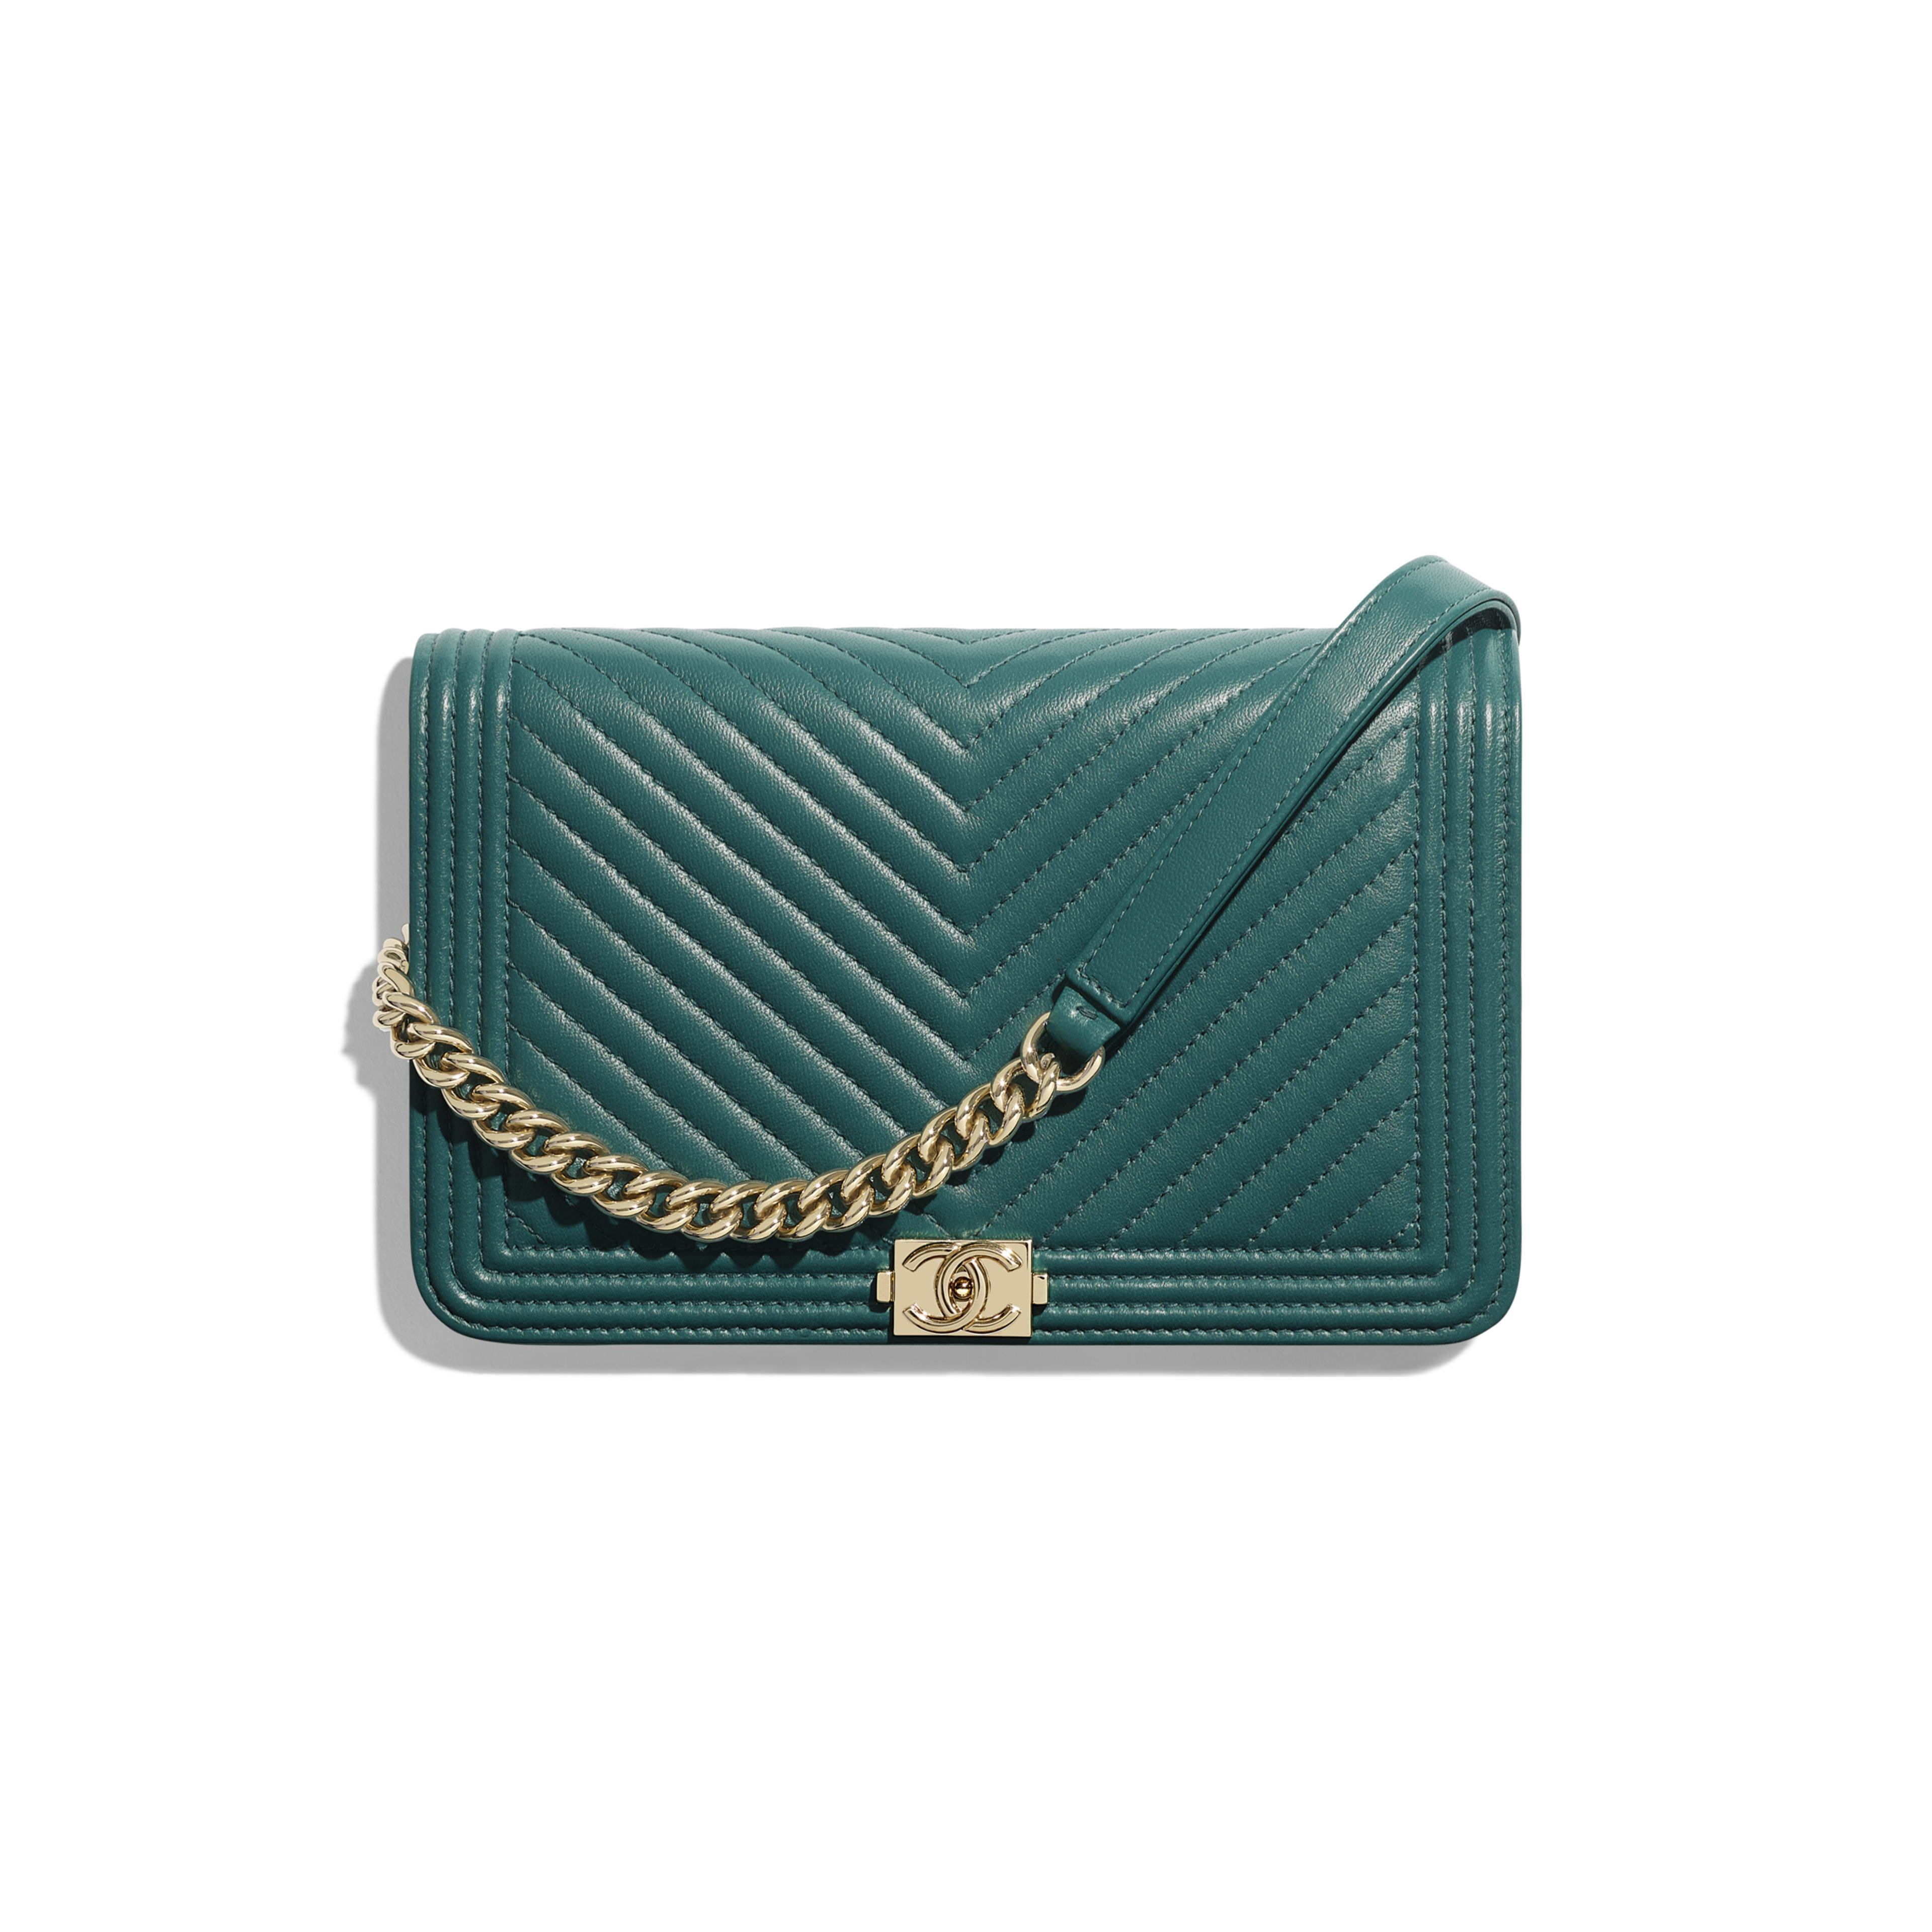 8228d96c339561 BOY CHANEL Wallet on Chain - Turquoise - Lambskin & Gold-Tone Metal -  Default view - see full sized version